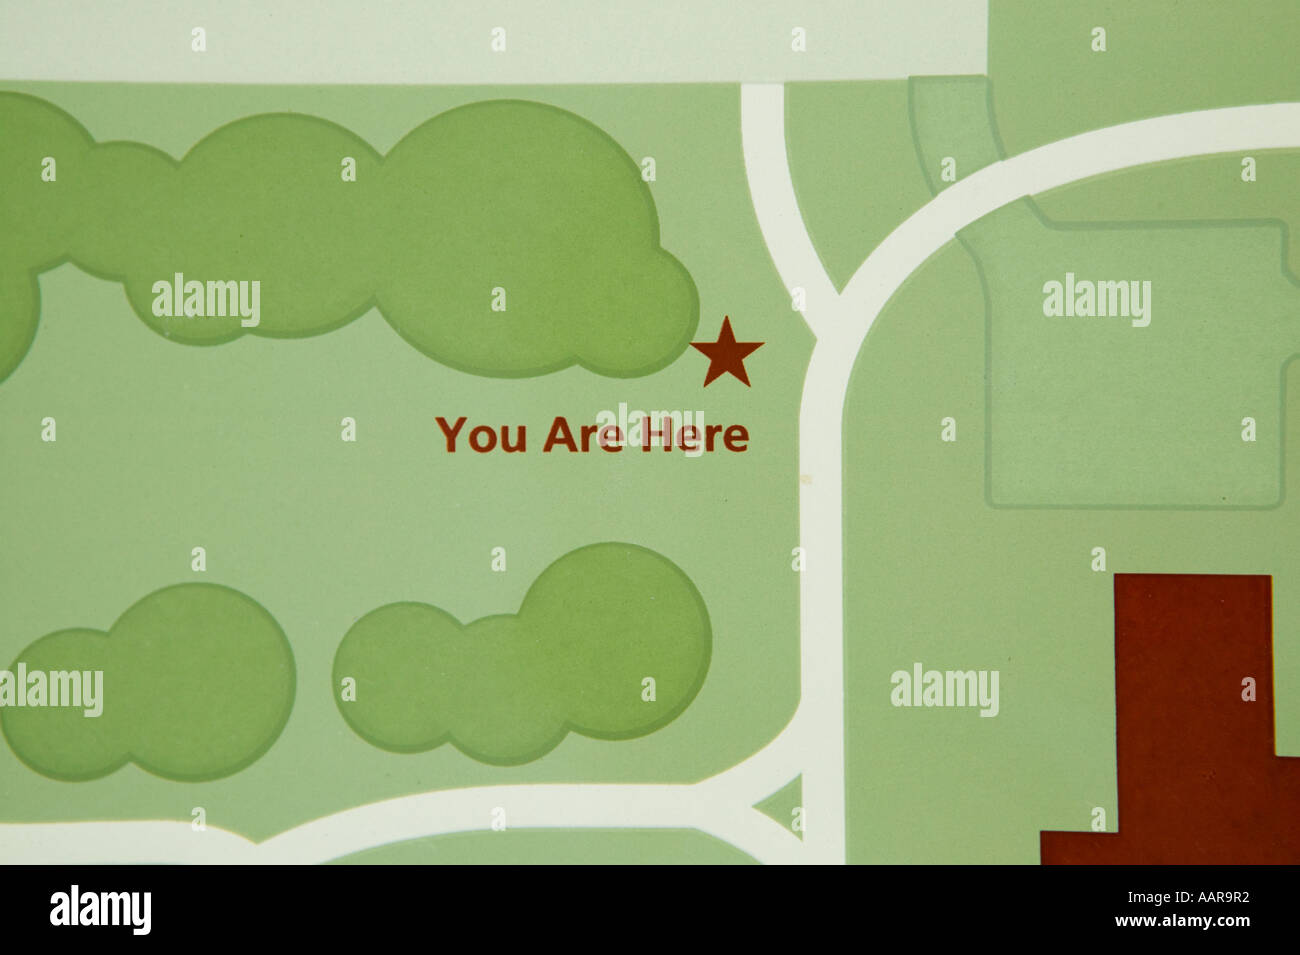 You are here says the map at the historic site - Stock Image